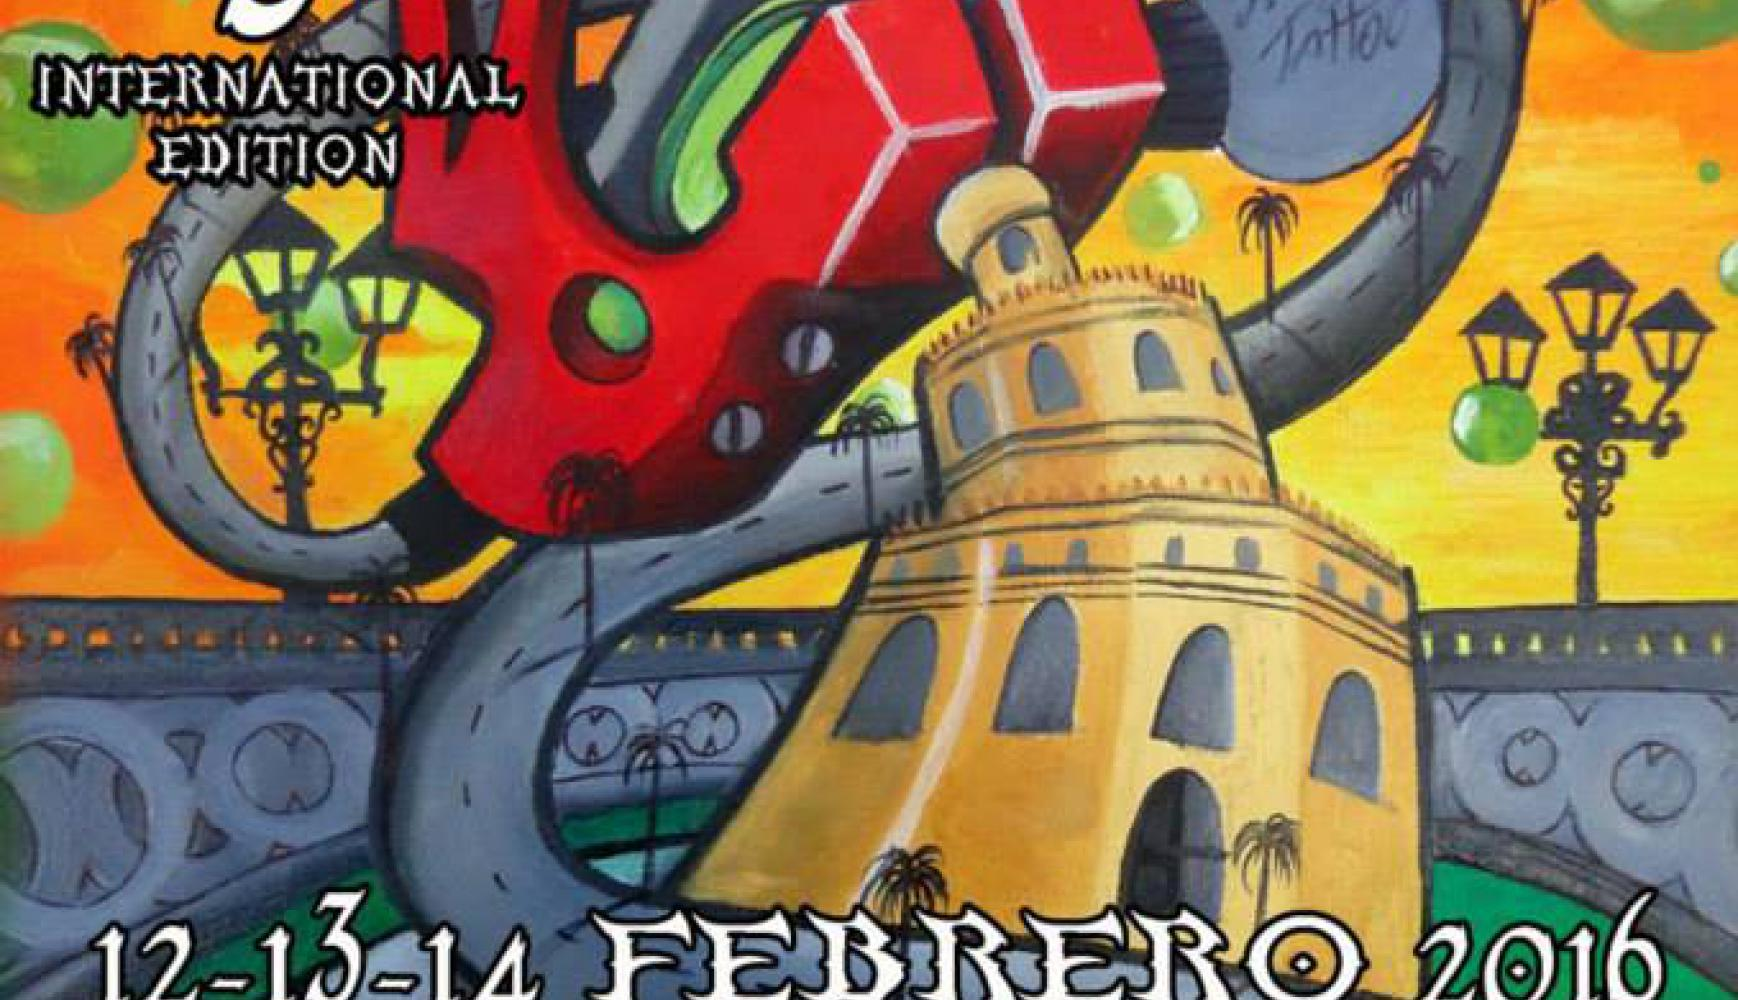 5 SEVILLA TATTOO CONVENTION  12 13 14 FEBRERO 2016